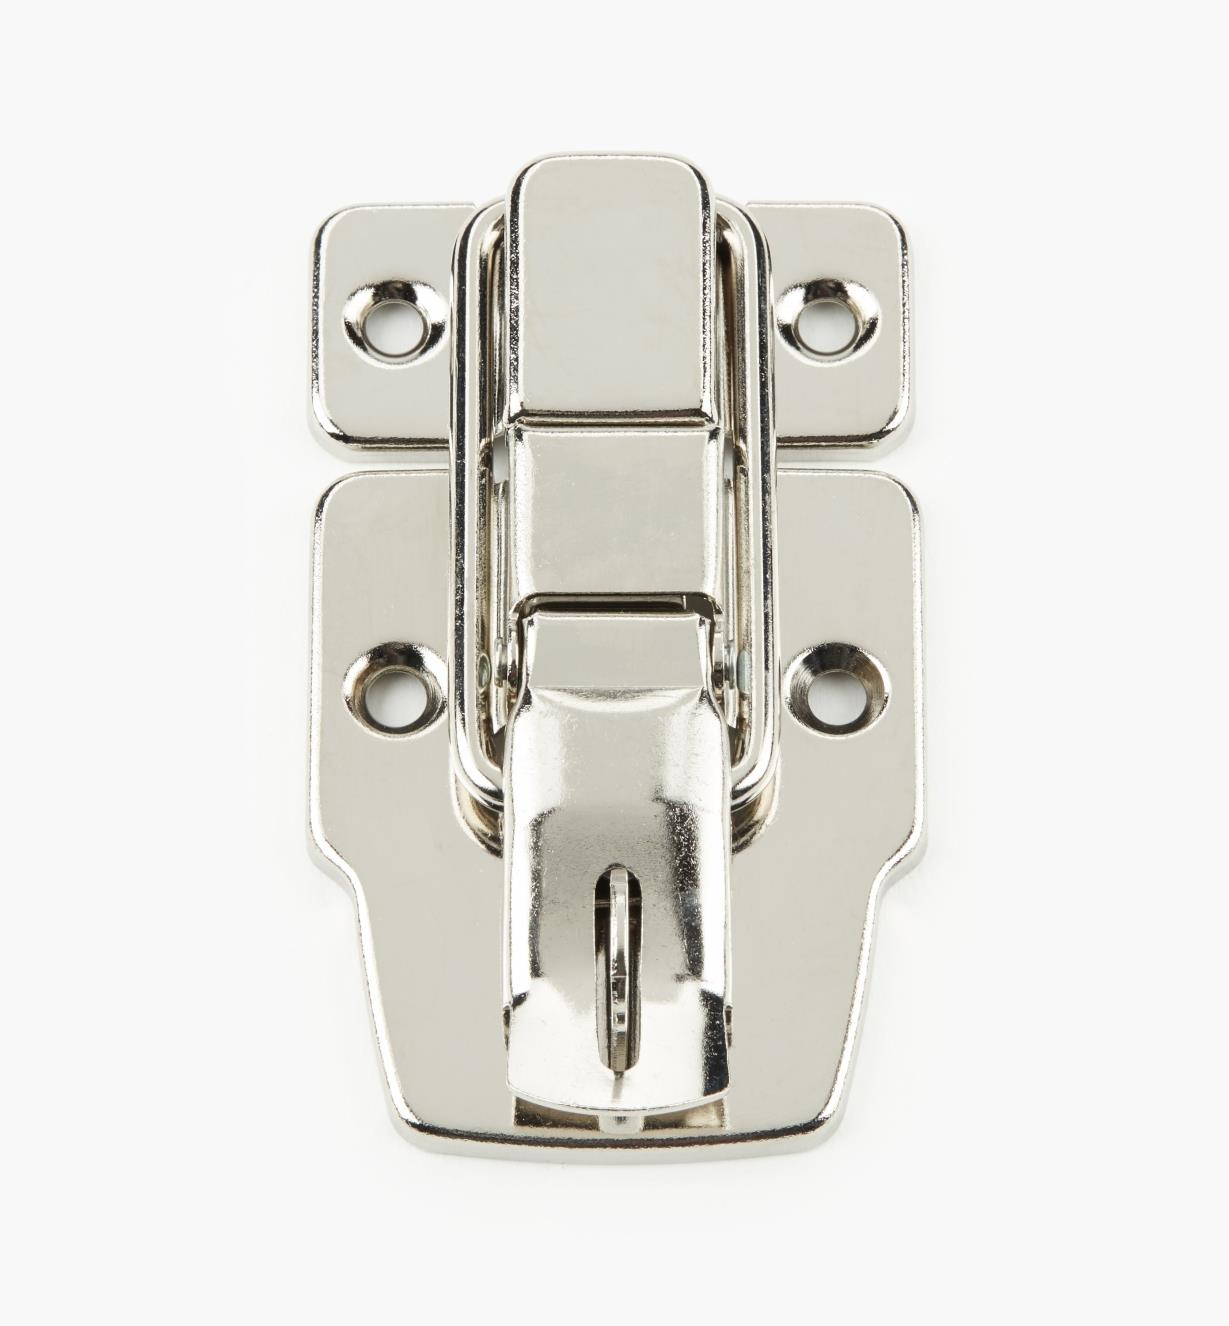 00S5540 - Nickel Plate Lockable Latch